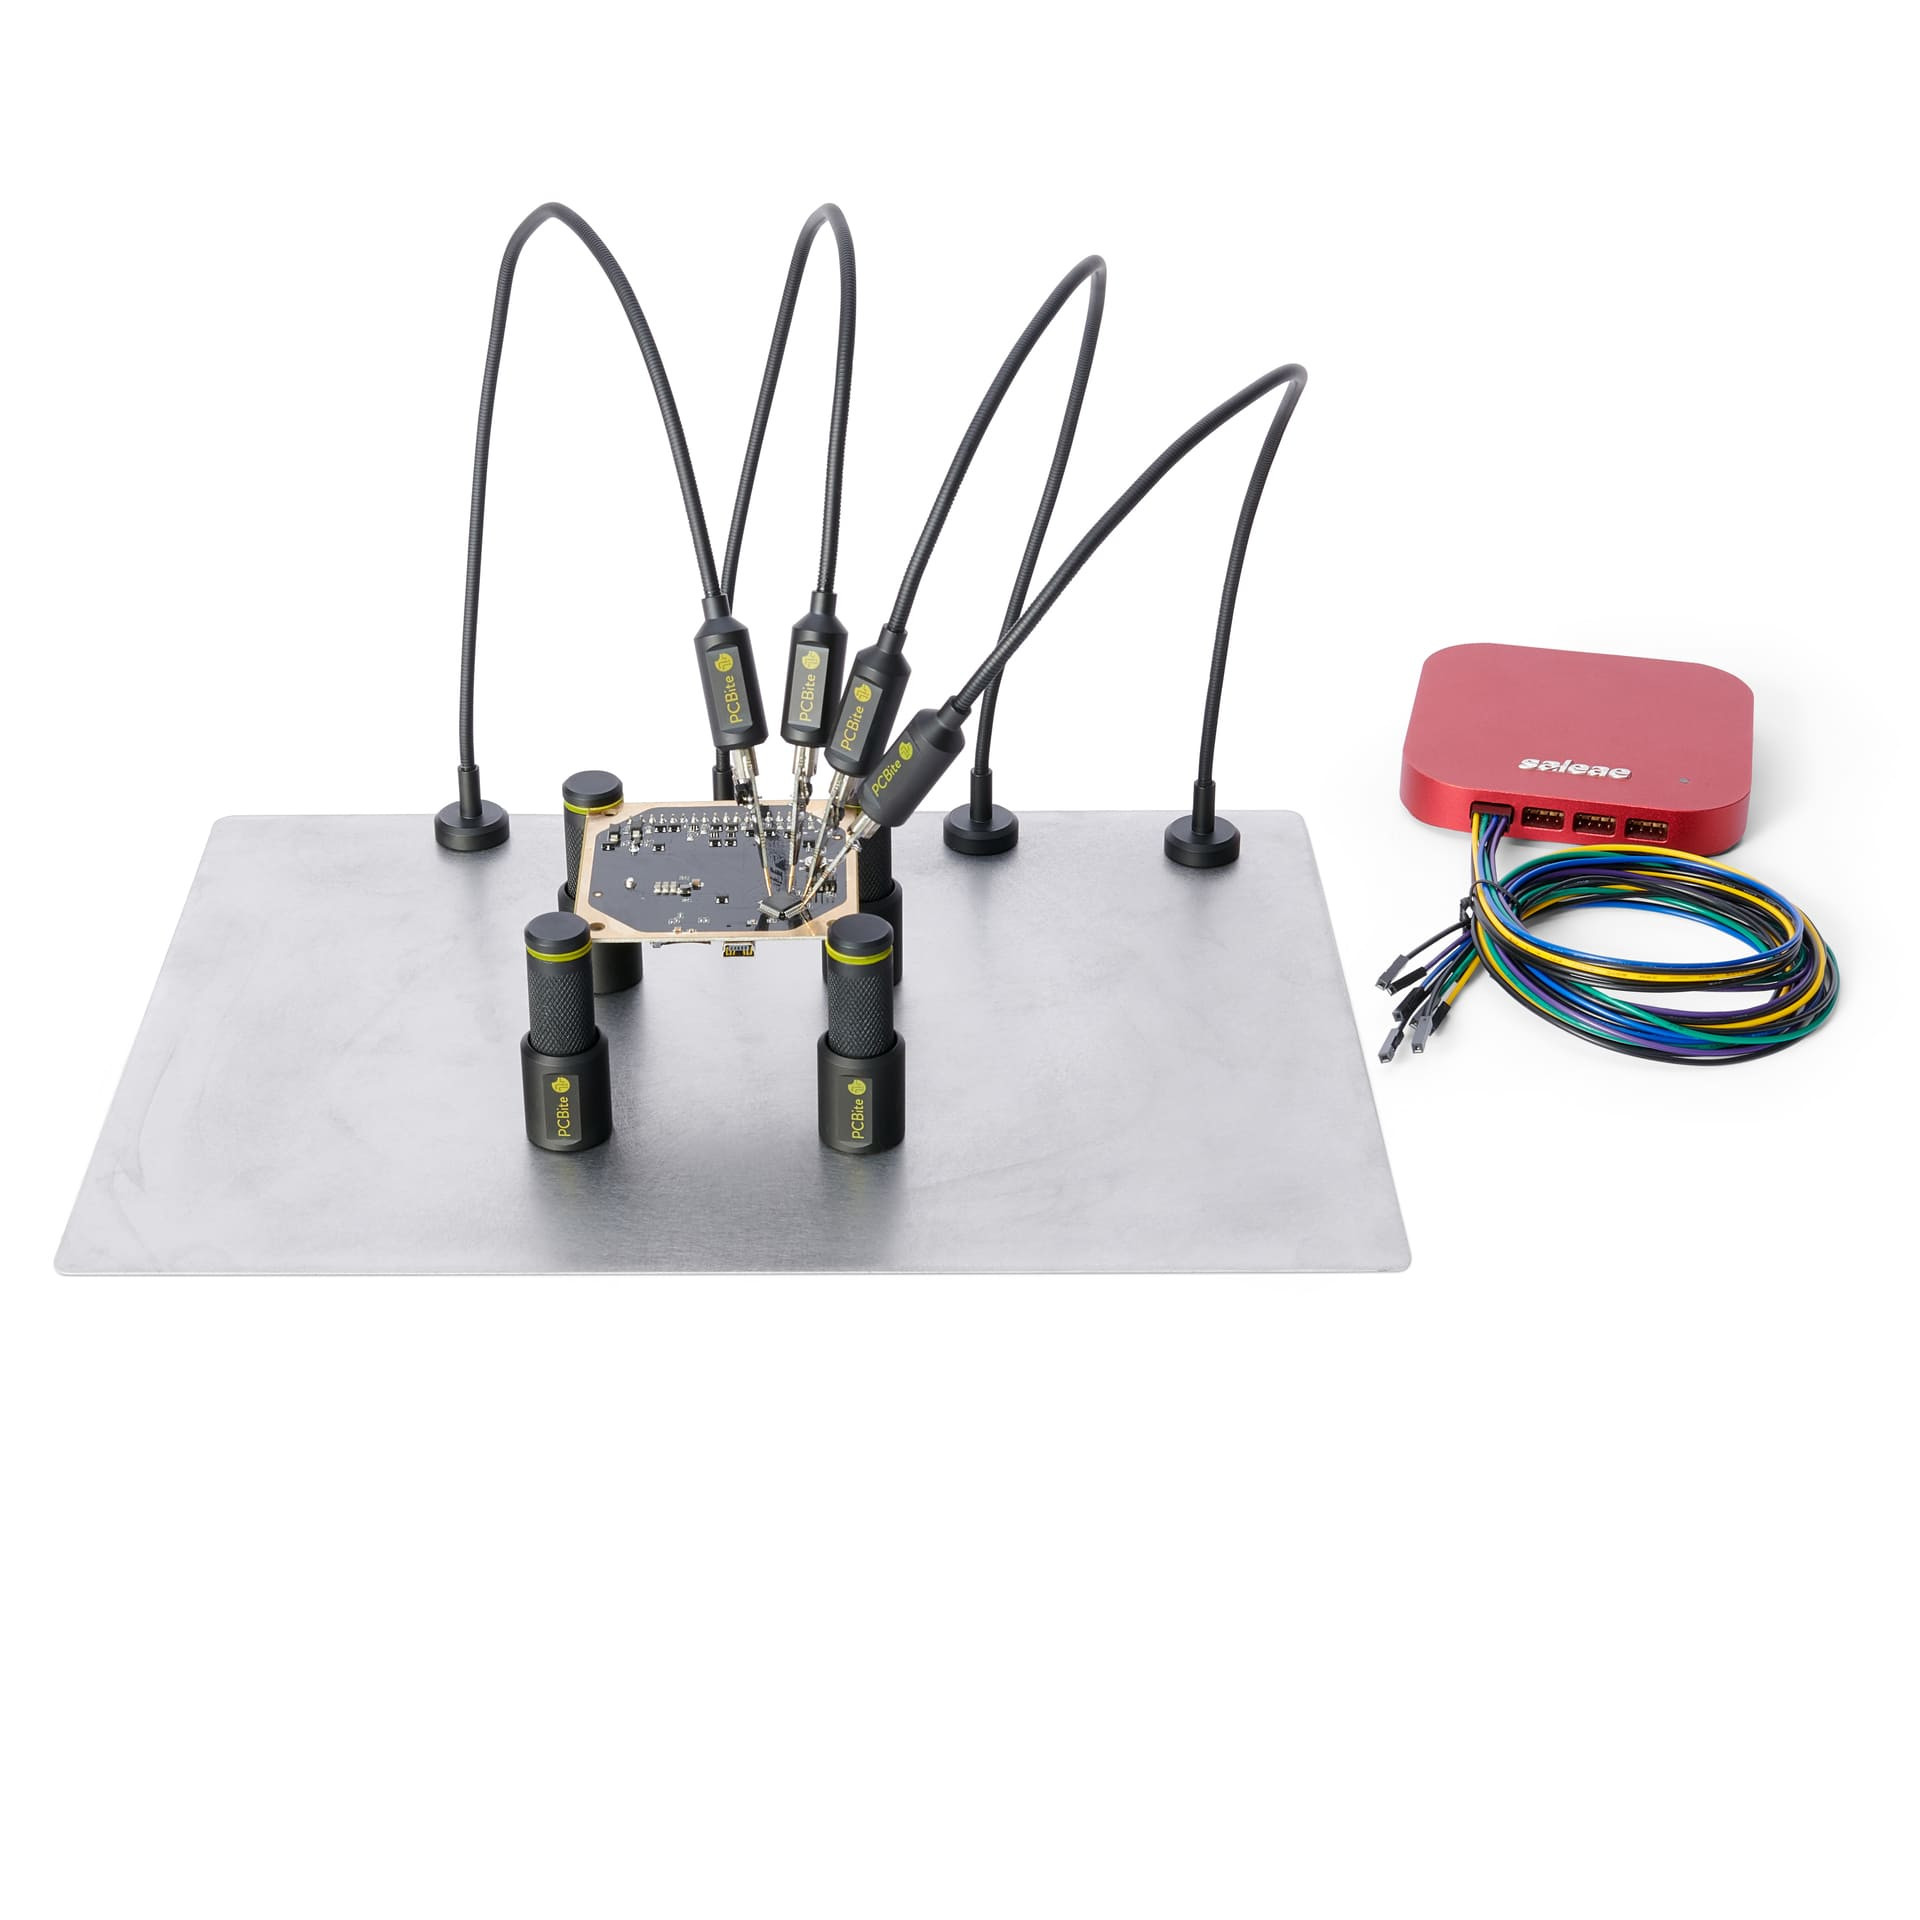 PCBite kit with 4 holders and test wires